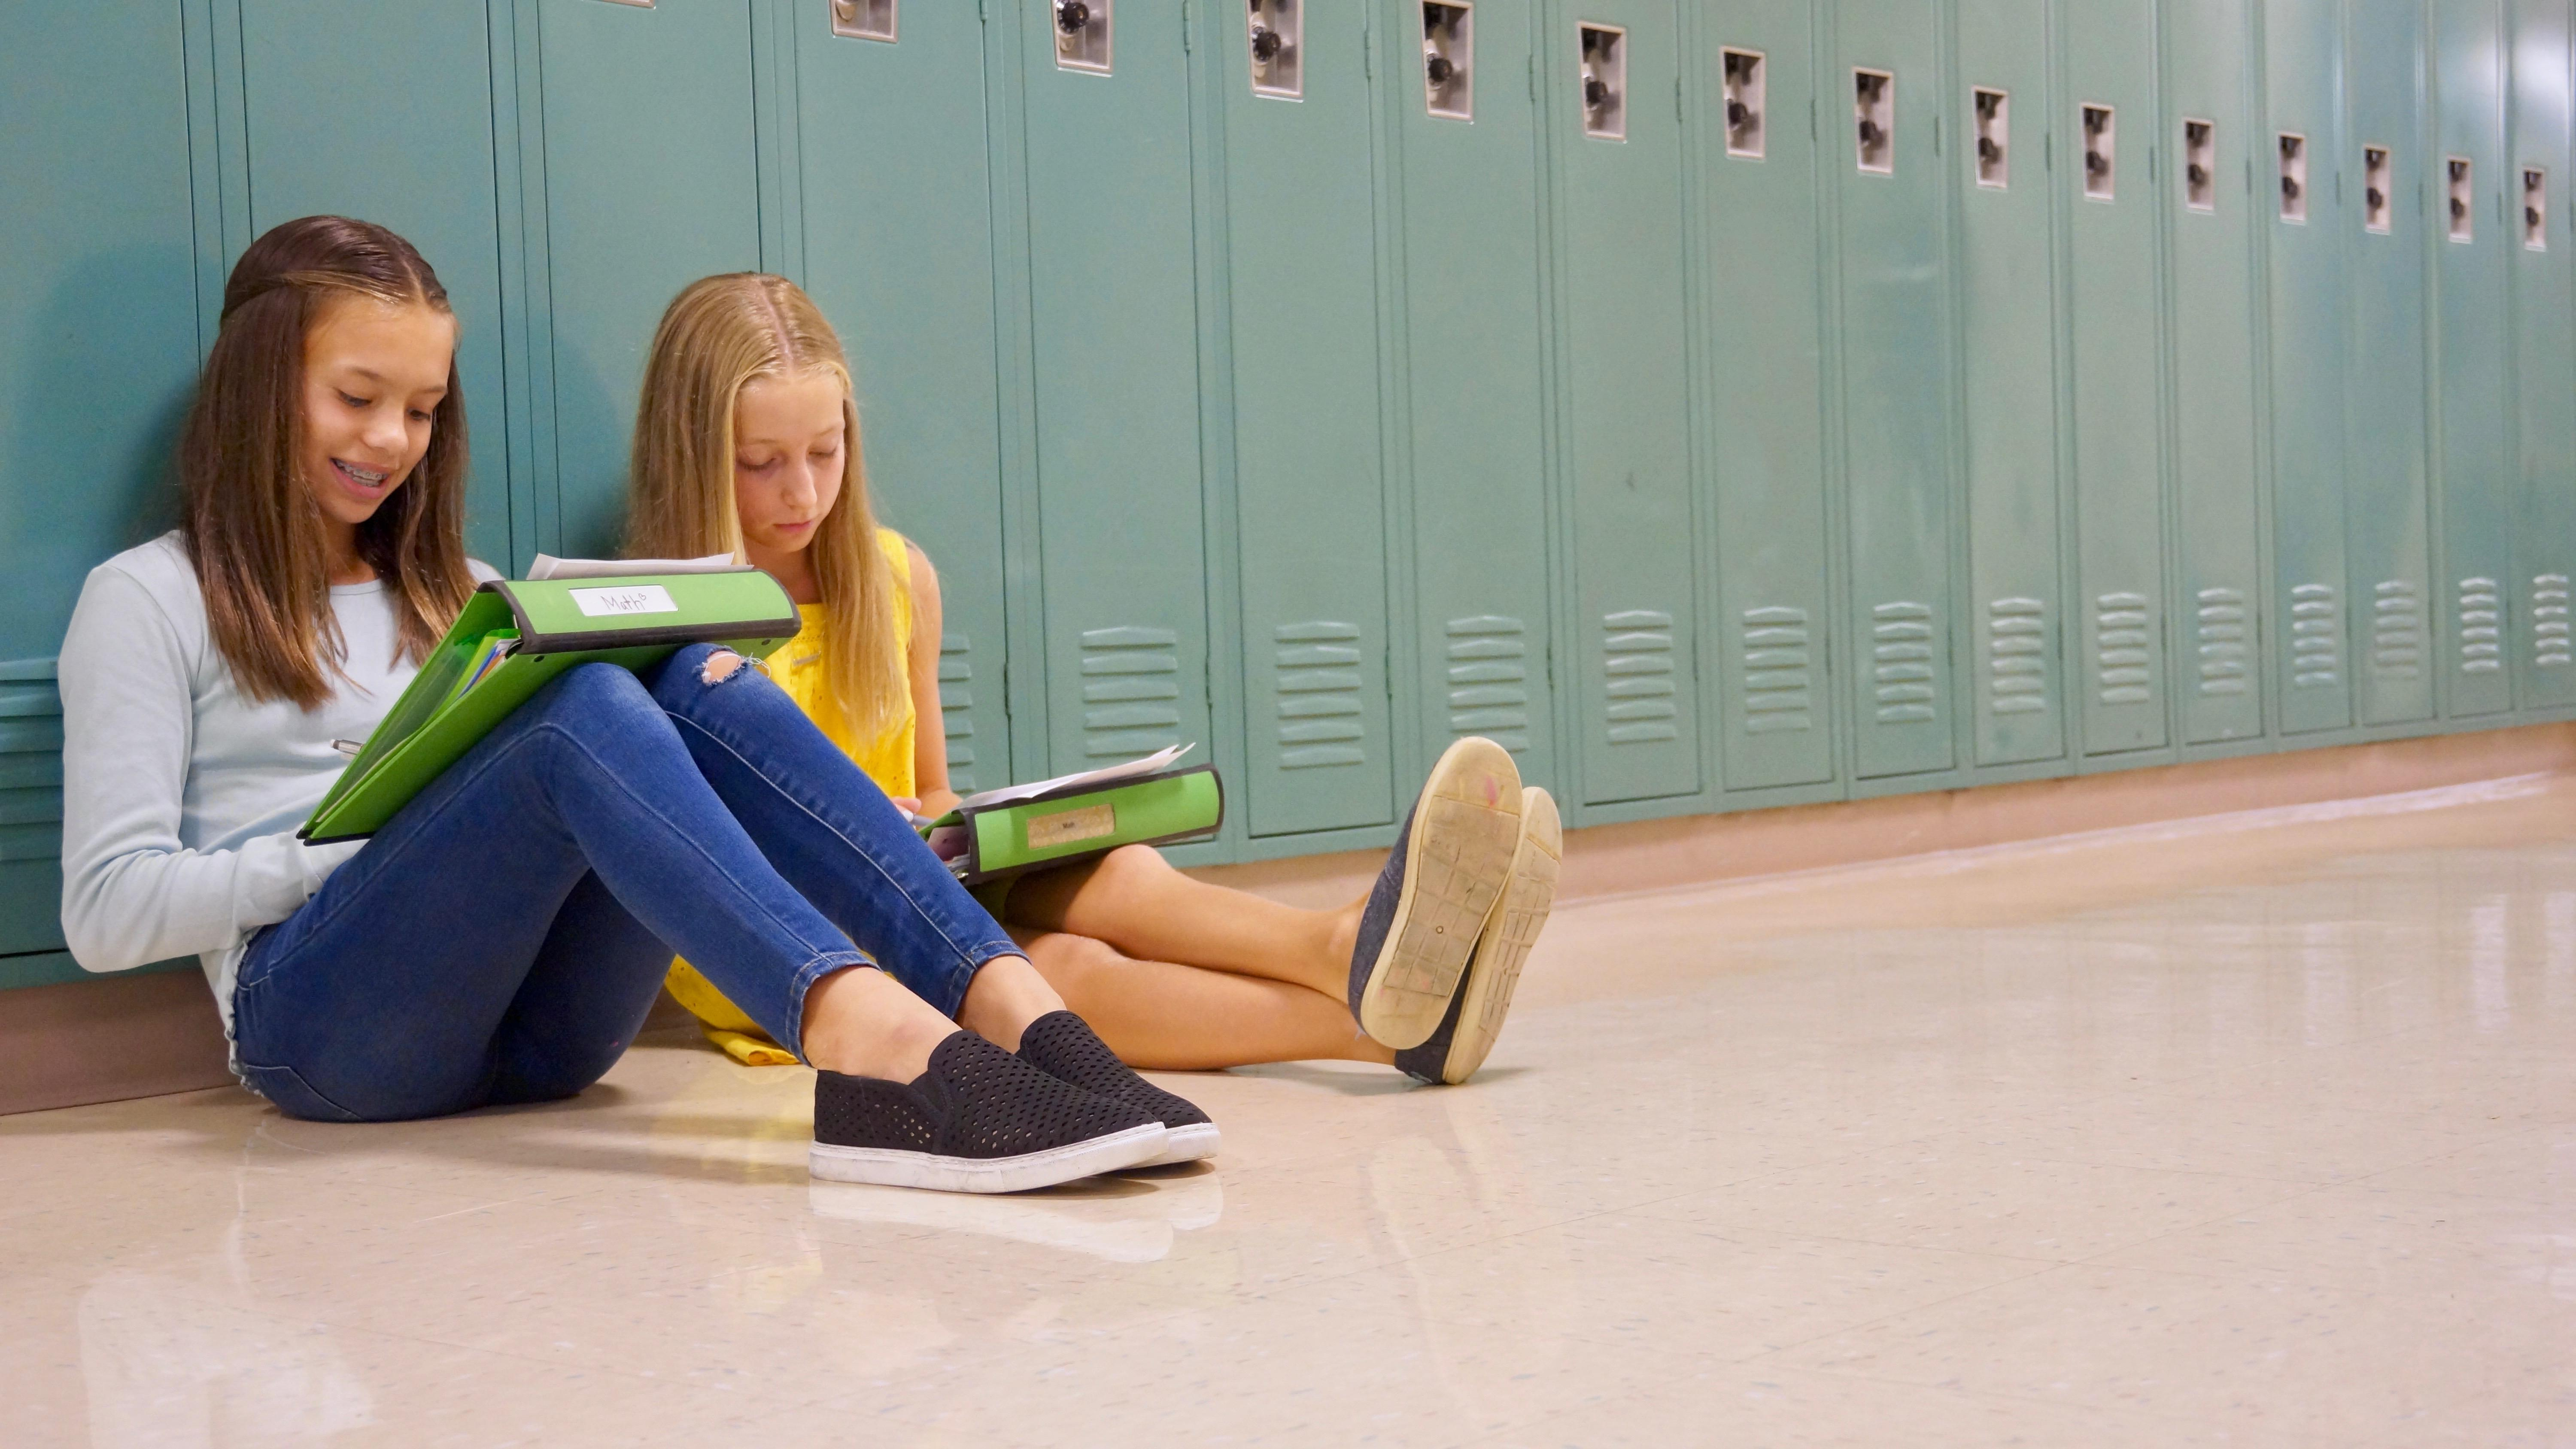 Girls sitting in front of lockers